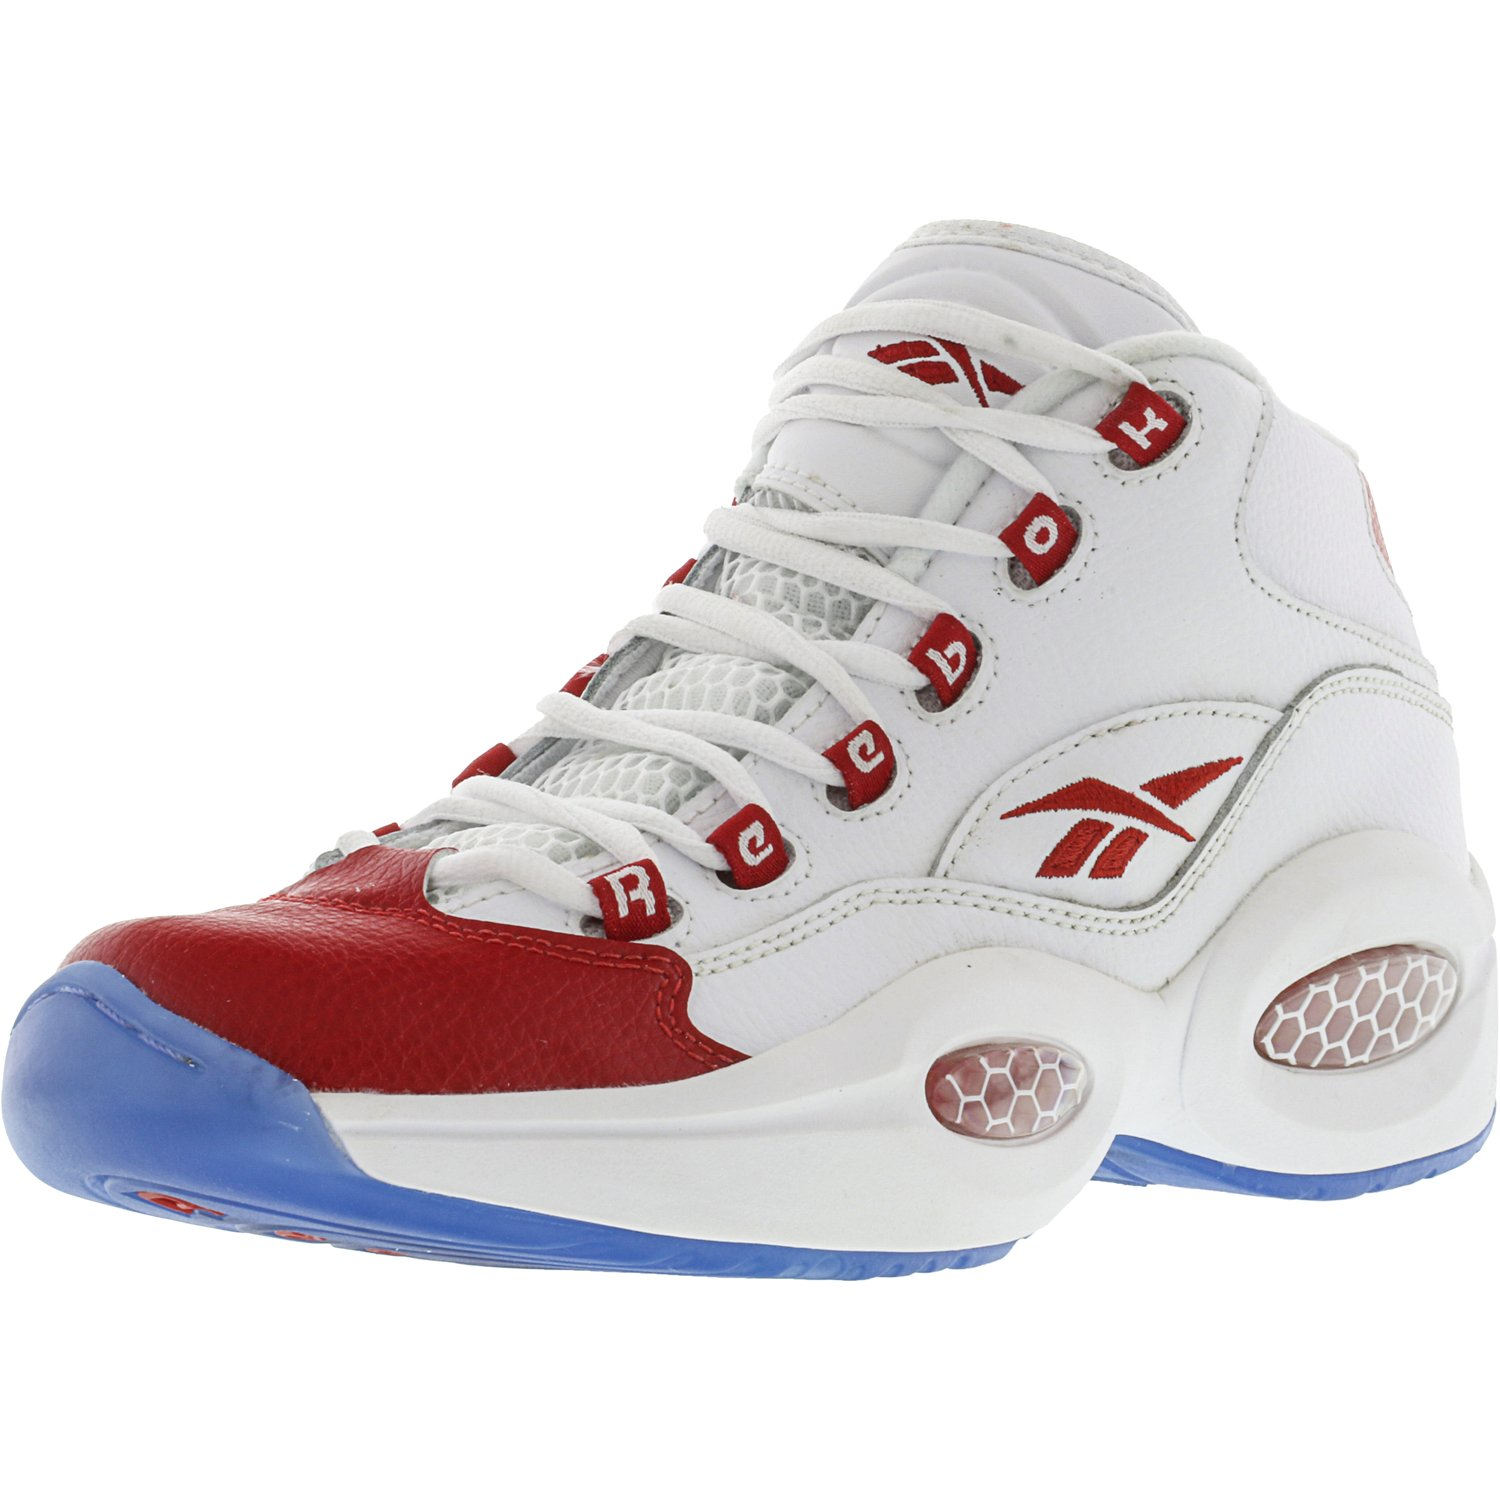 Reebok Reebok Boy's Question Mid White Pearlized Red High Top Basketball Shoe 7M